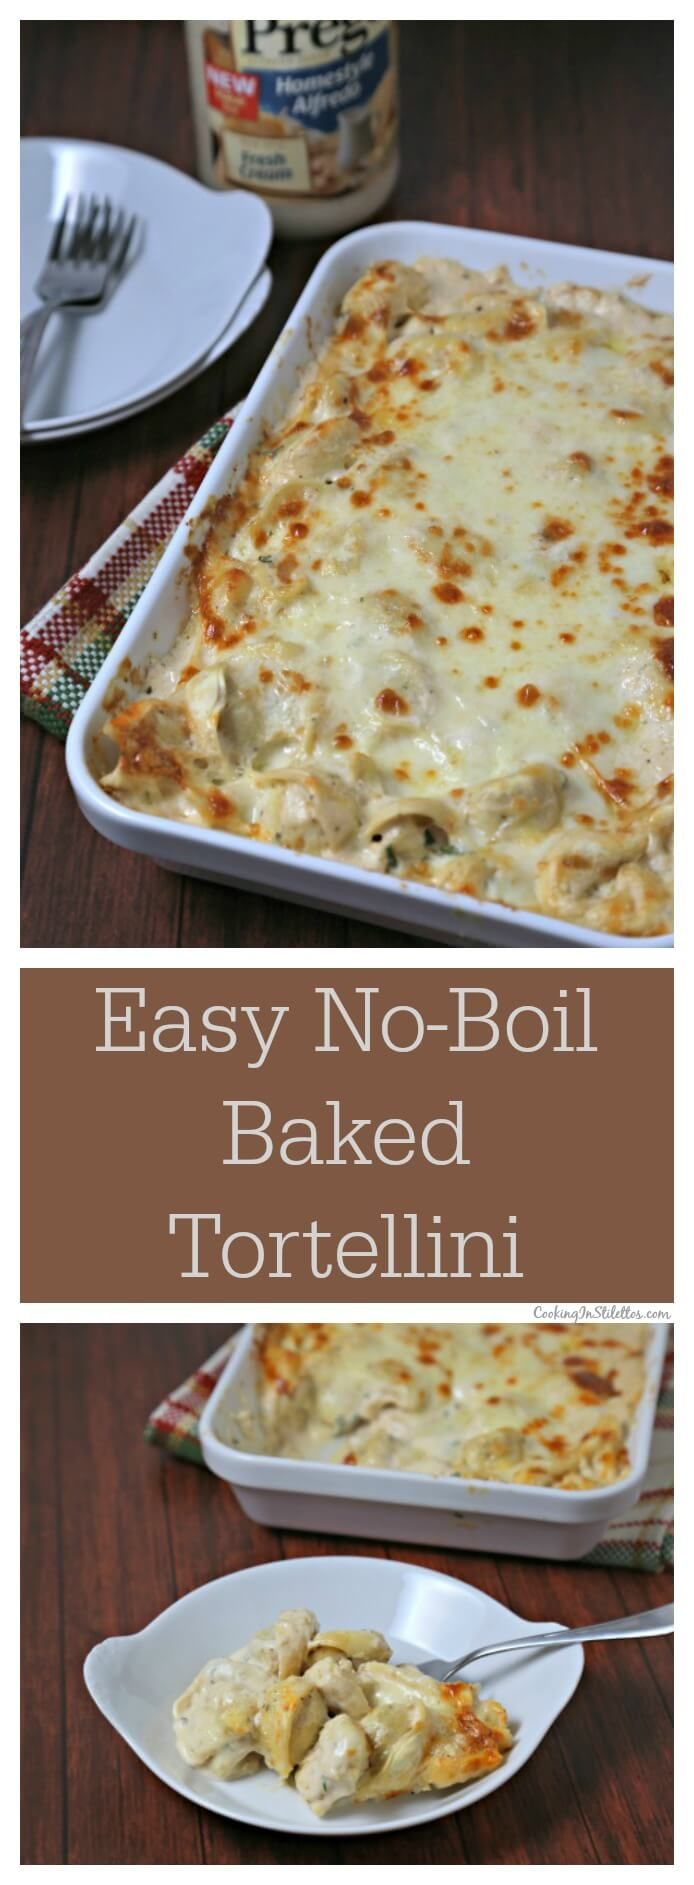 This Easy No-Boil Baked Tortellini from CookingInStilettos.com comes together in a flash. Refrigerated tortellini is tossed with a cheesy alfredo sauce and then baked to perfection under layers of smoked mozzarella cheese. This is comfort in every bite! #PregoSauce AD